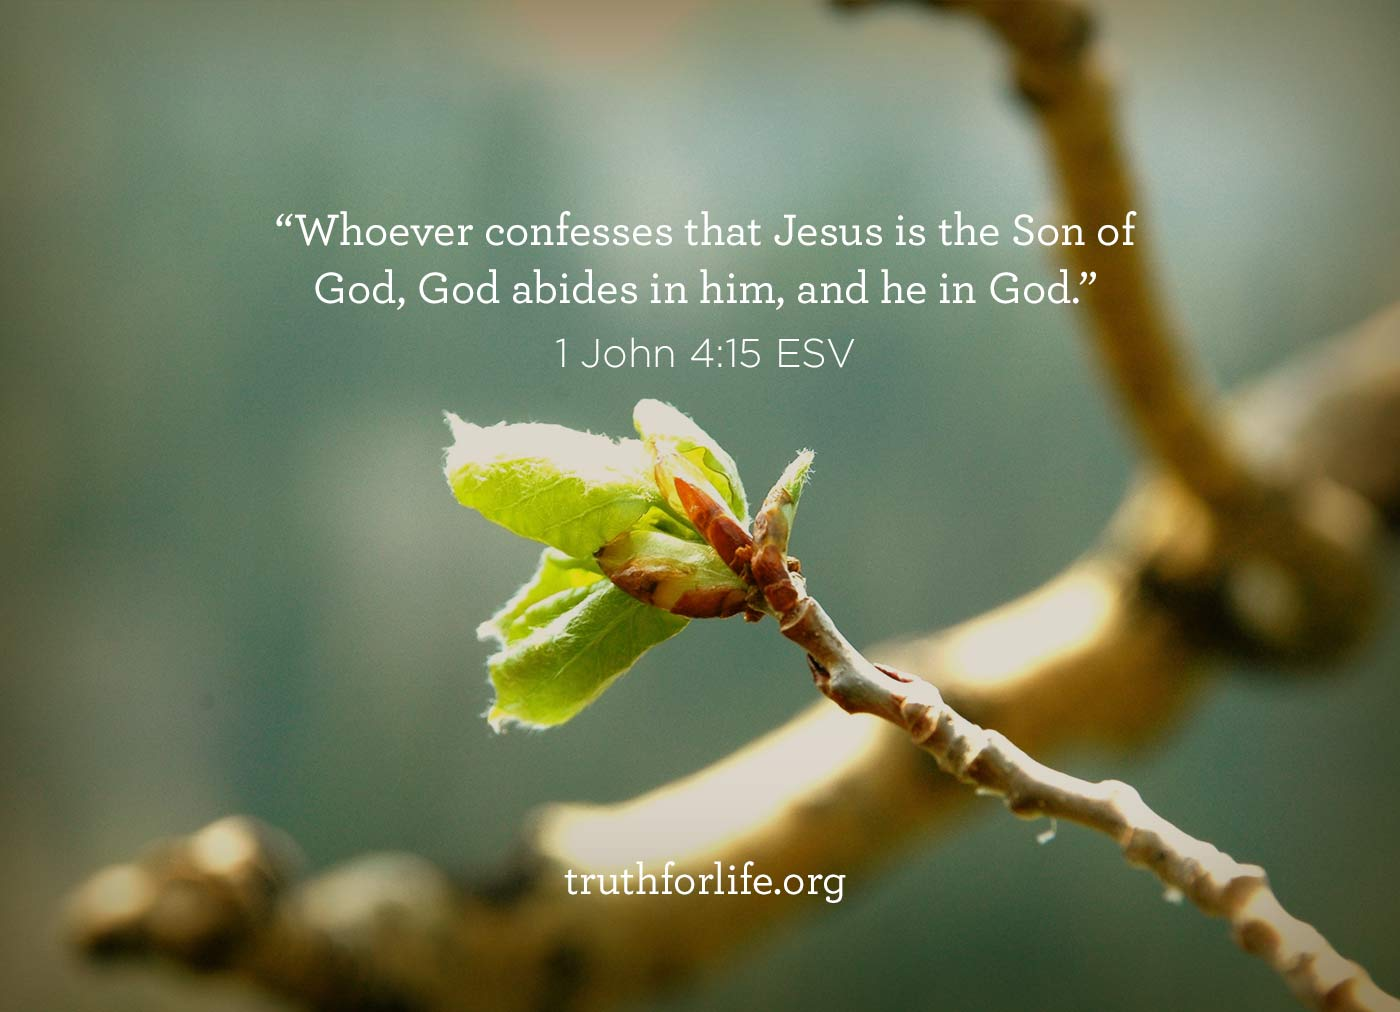 thumbnail image for Whoever confesses that Jesus is the Christ...